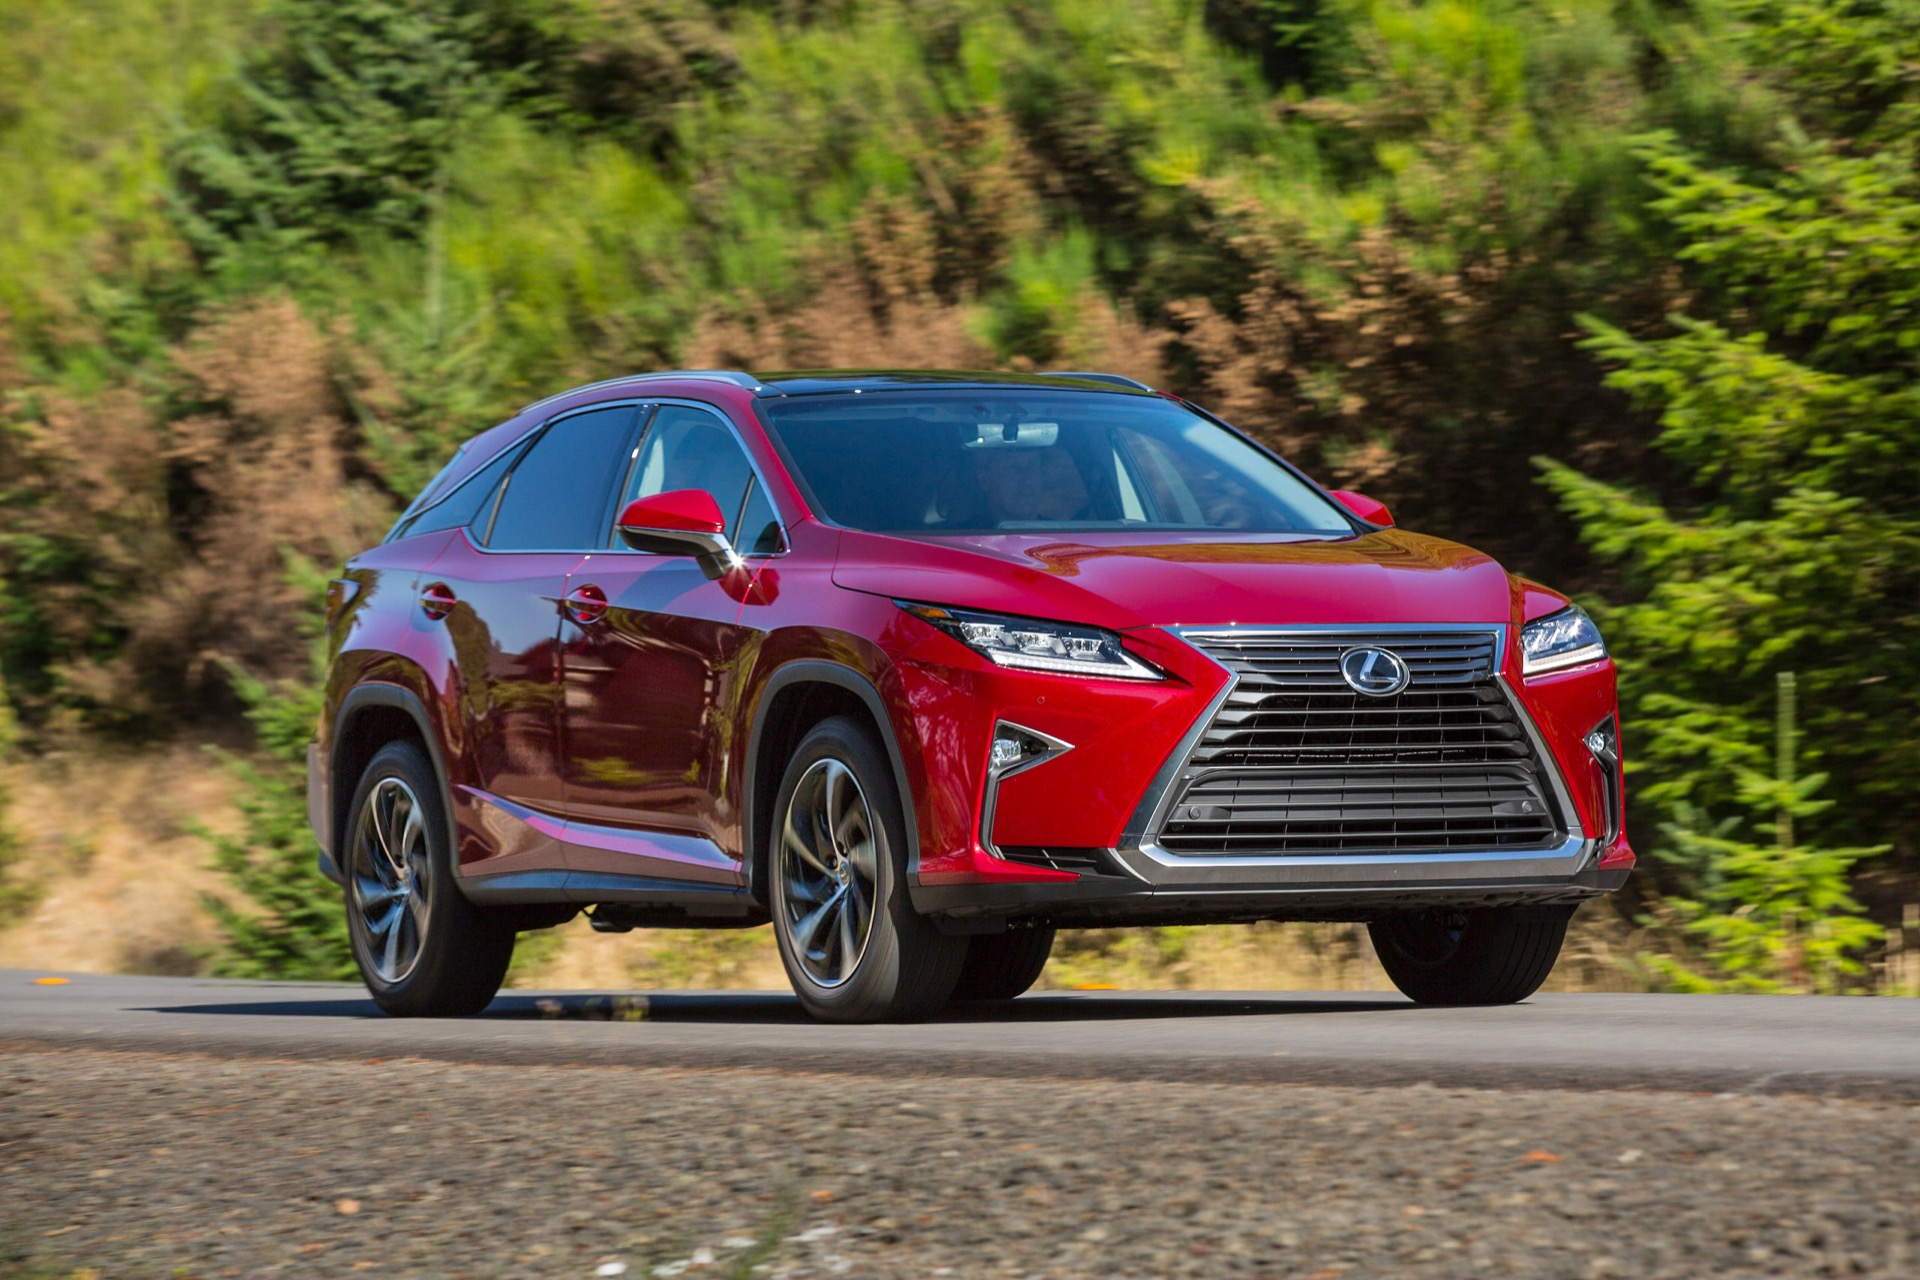 2016 Lexus RX 350 and RX 450h Recalled To Replace Faulty Airbags